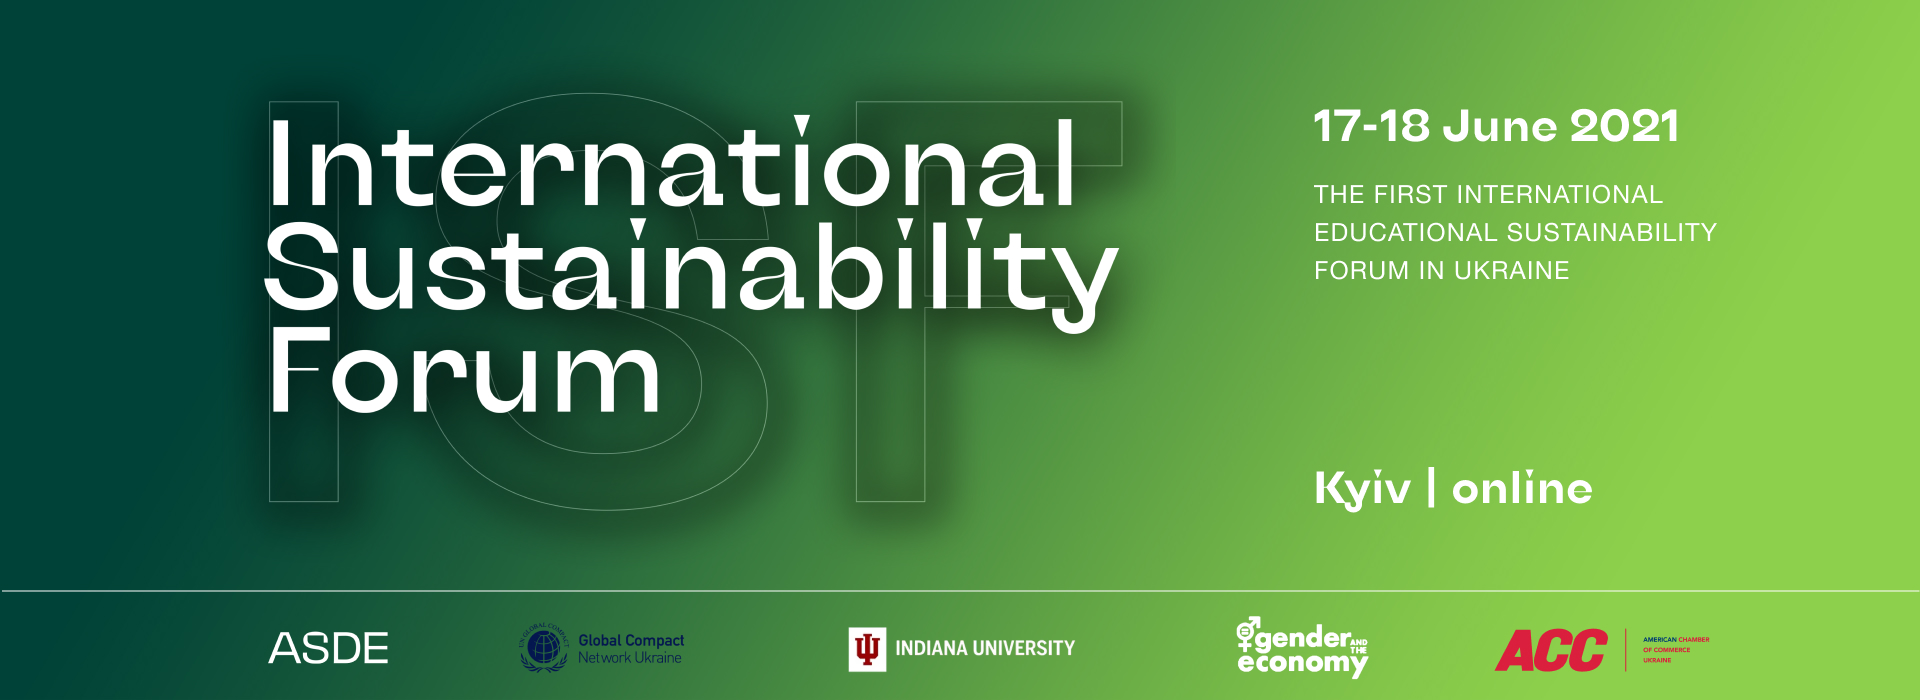 The First International Sustainability Forum Will Take Place In Ukraine